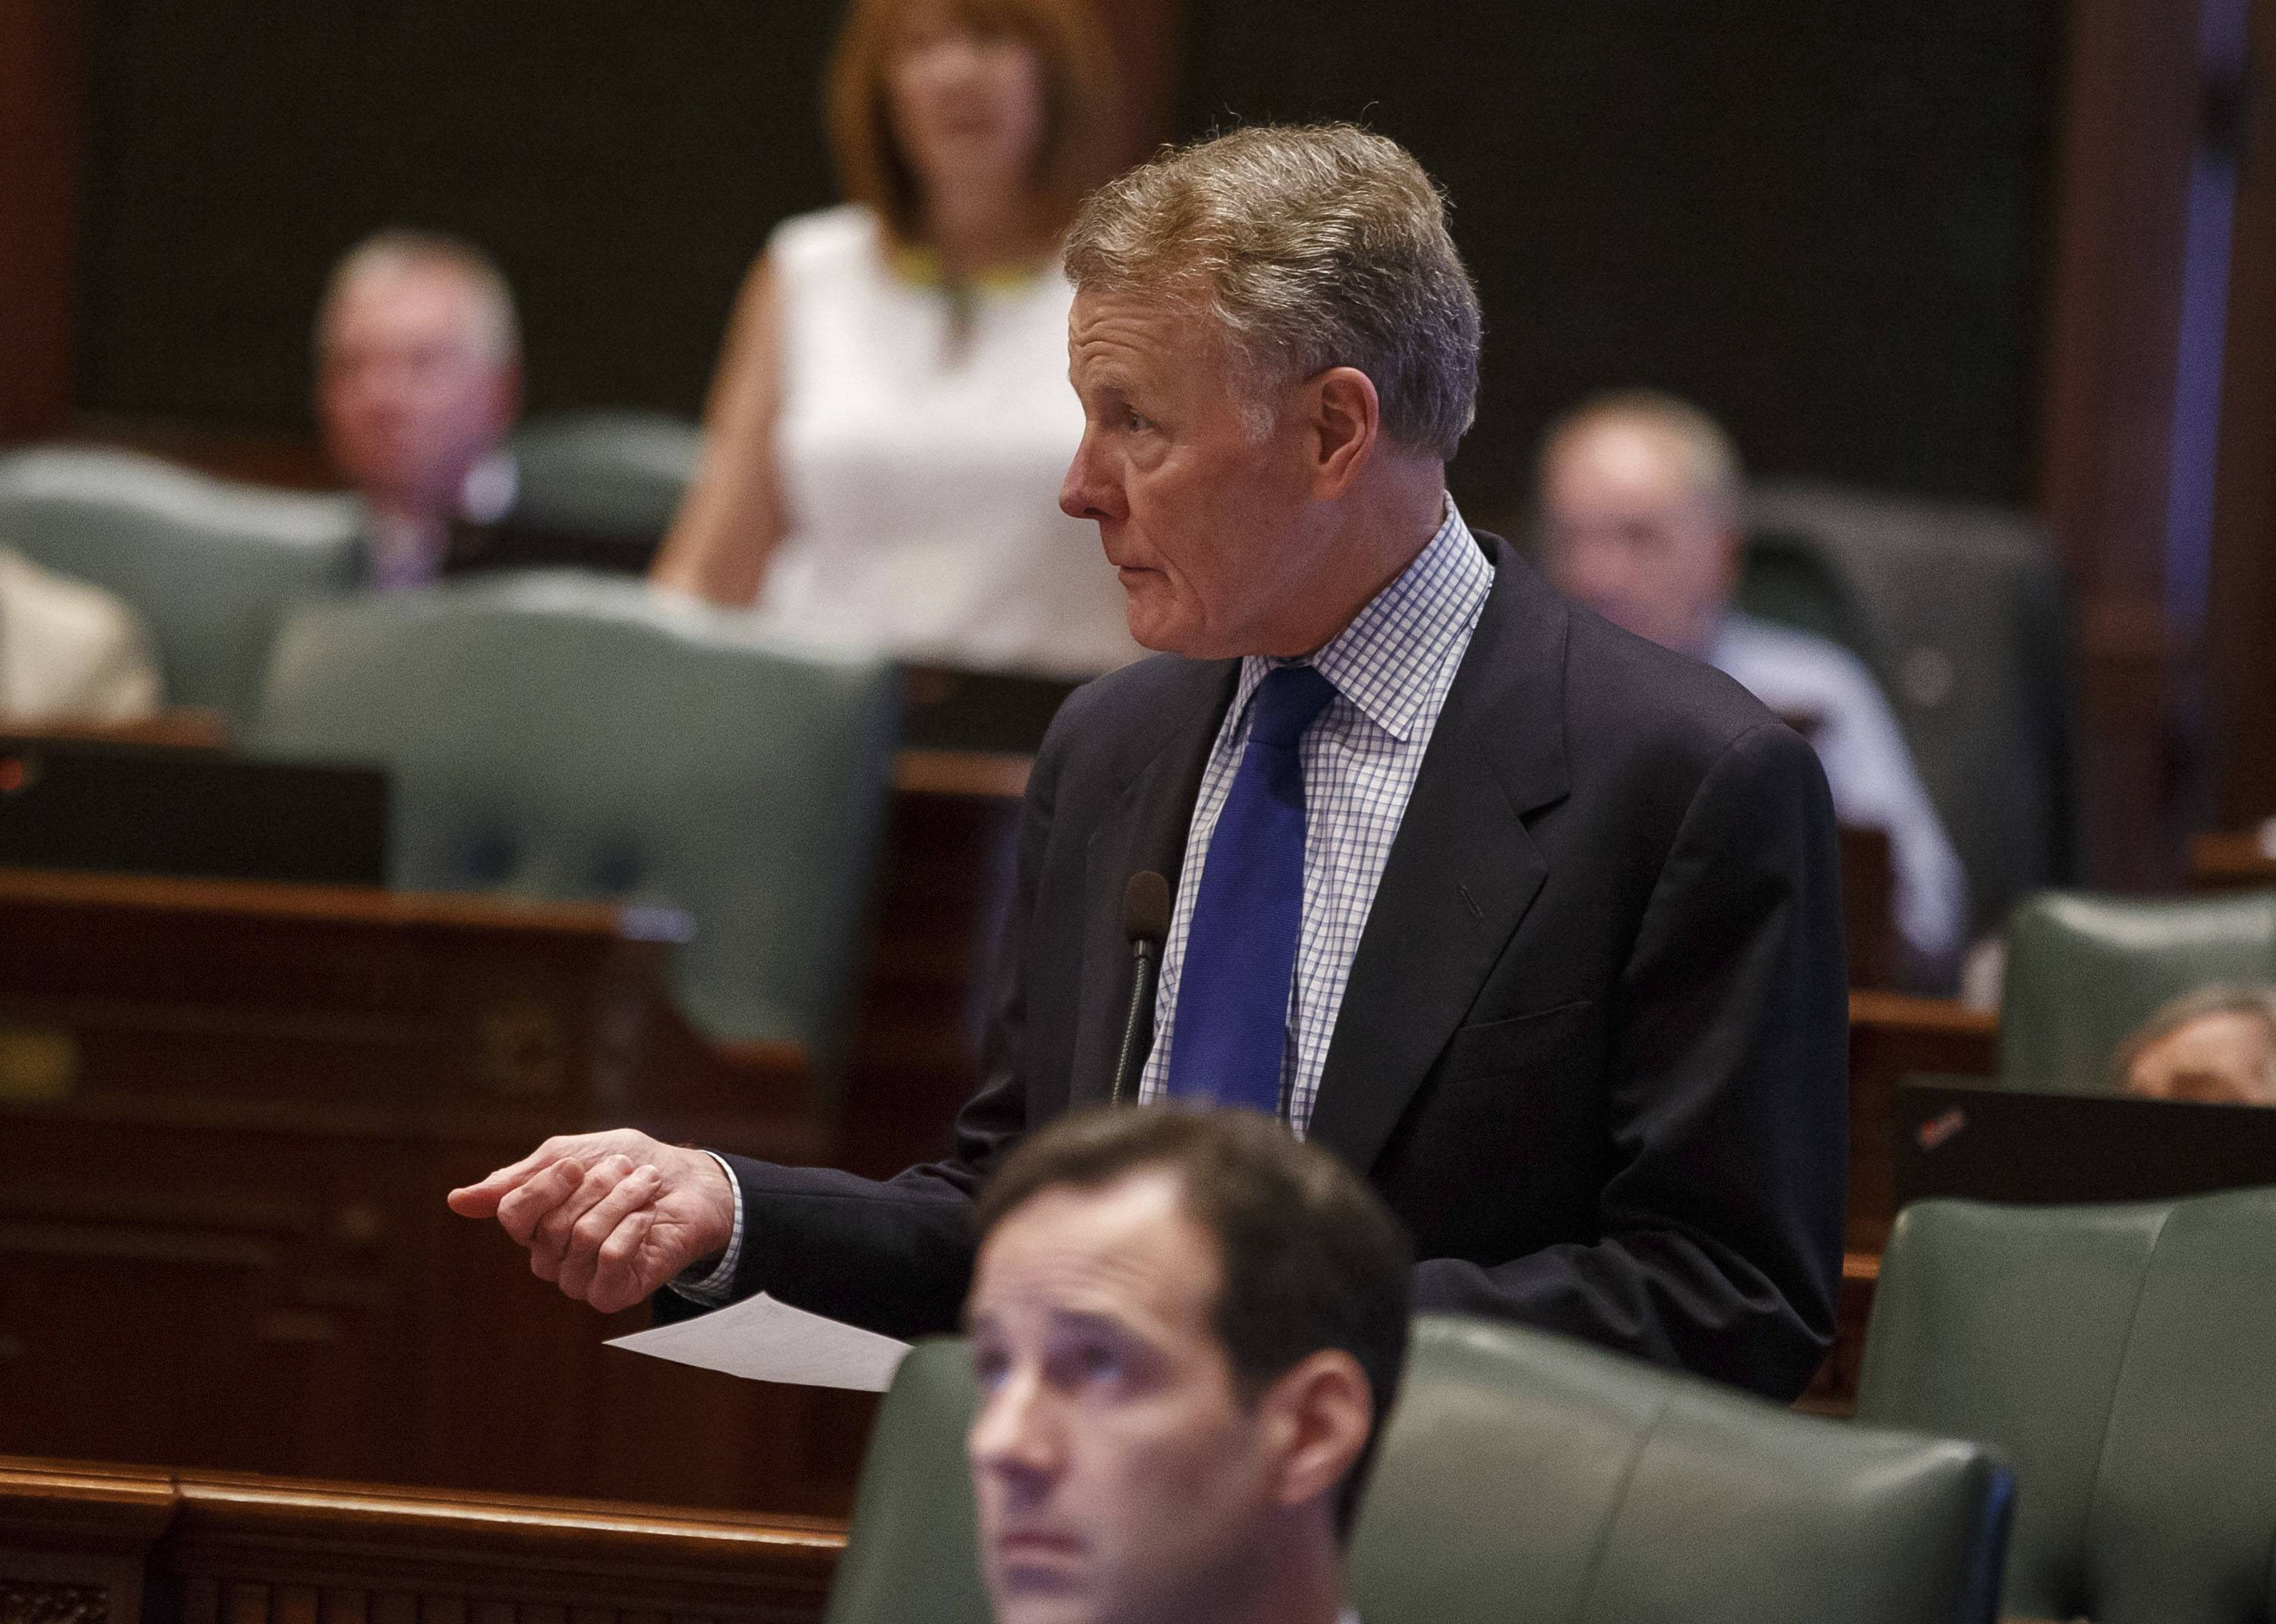 Illinois speaker of the House Michael Madigan House floor at the State Capitol on Saturday. On Sunday, the House passed a bill that will increase the state's personal income tax rate by 32 percent.